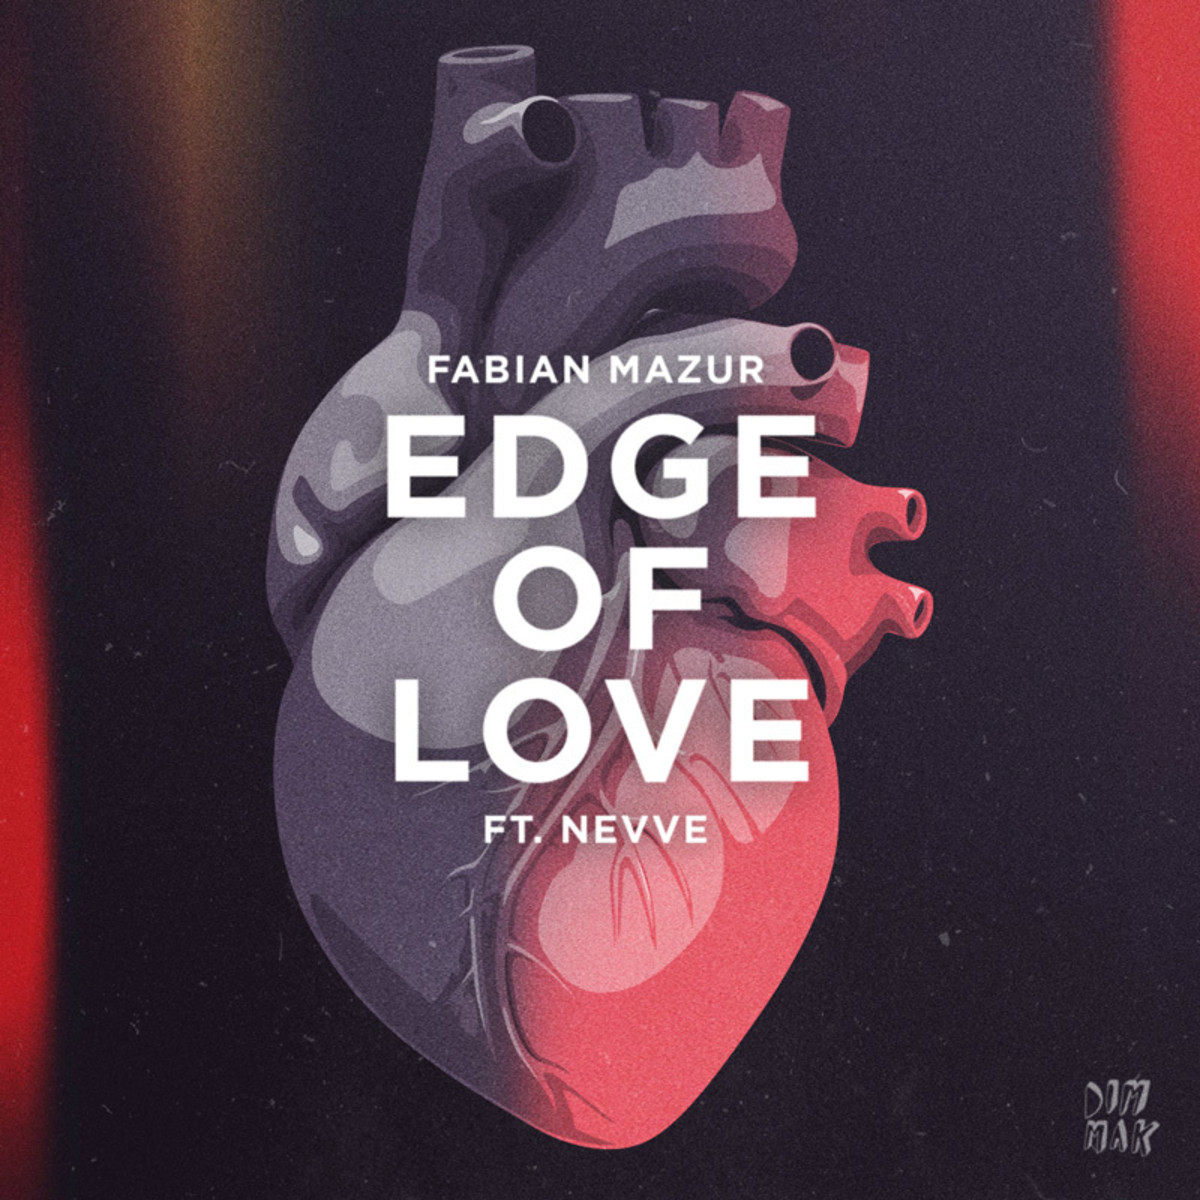 Fabian Mazur Edge of Love ft. Nevve